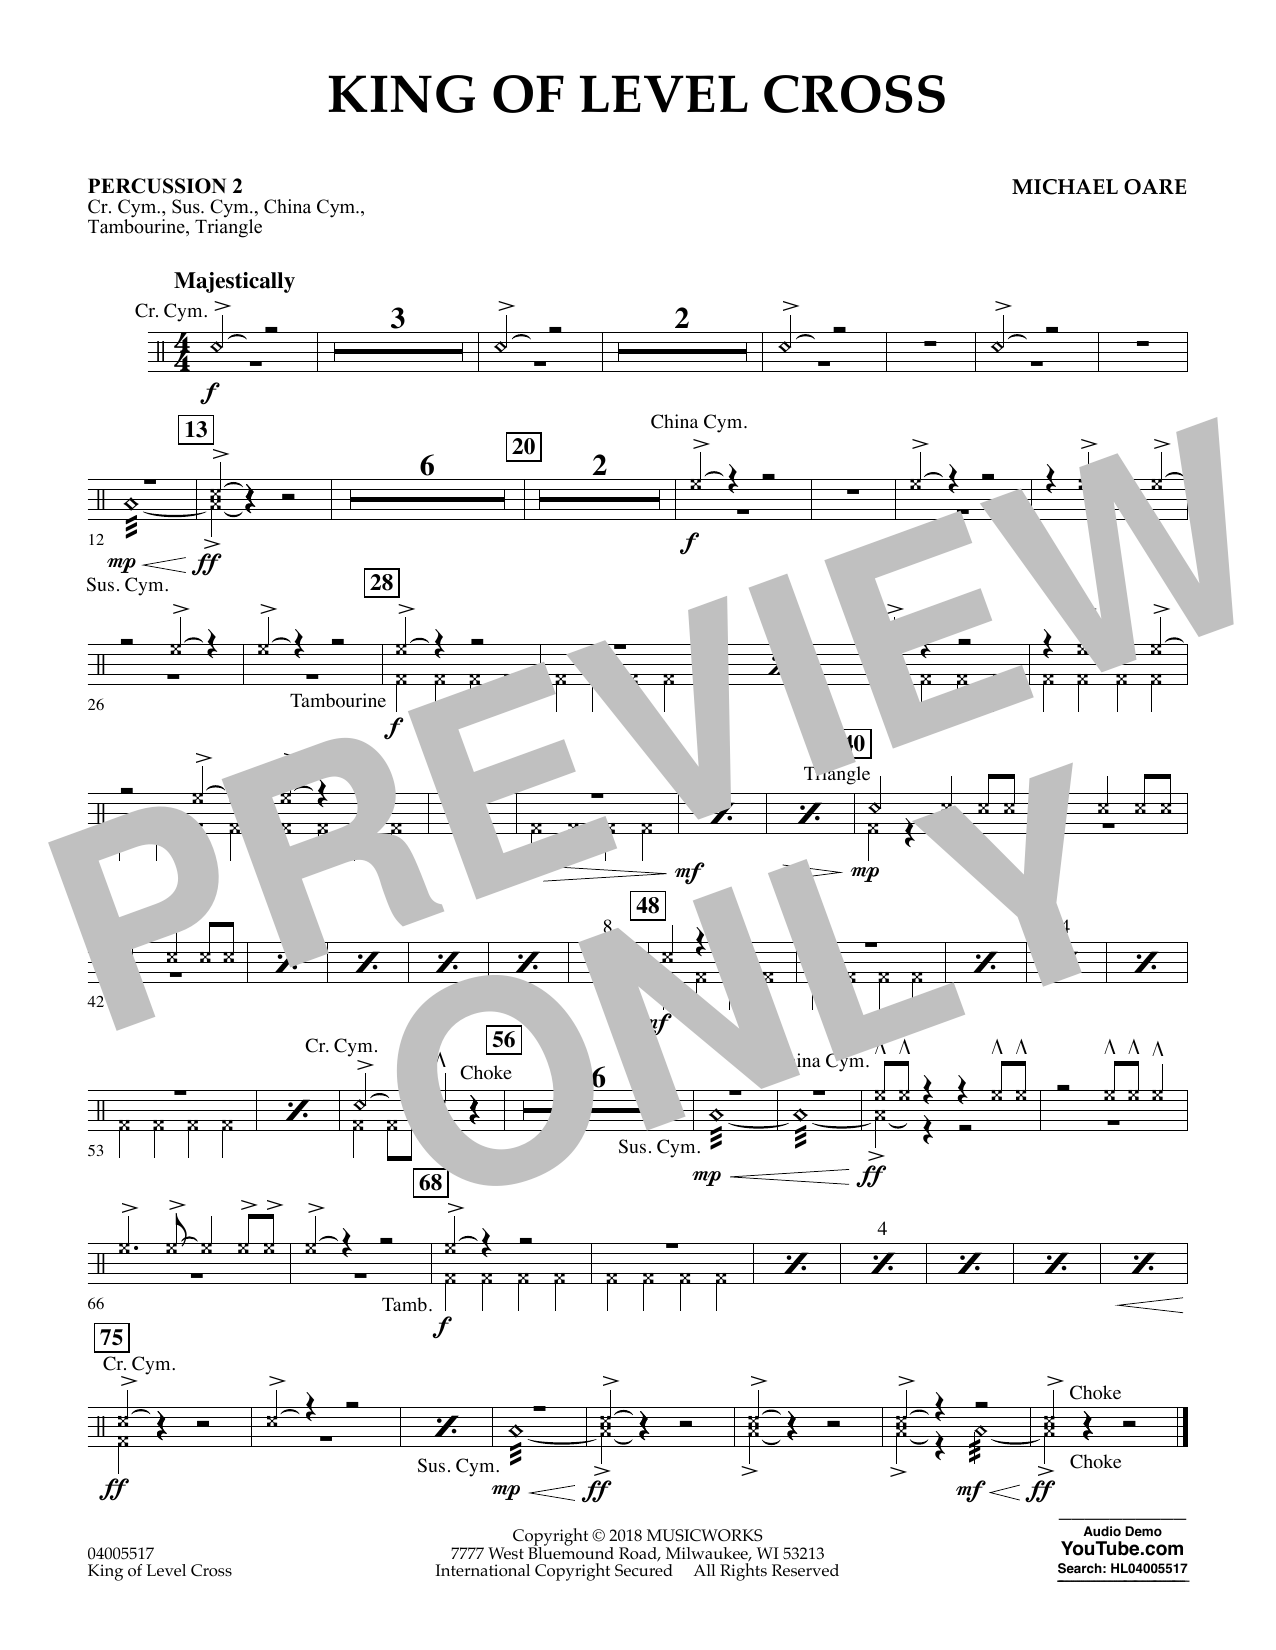 King of Level Cross - Percussion 2 (Concert Band)